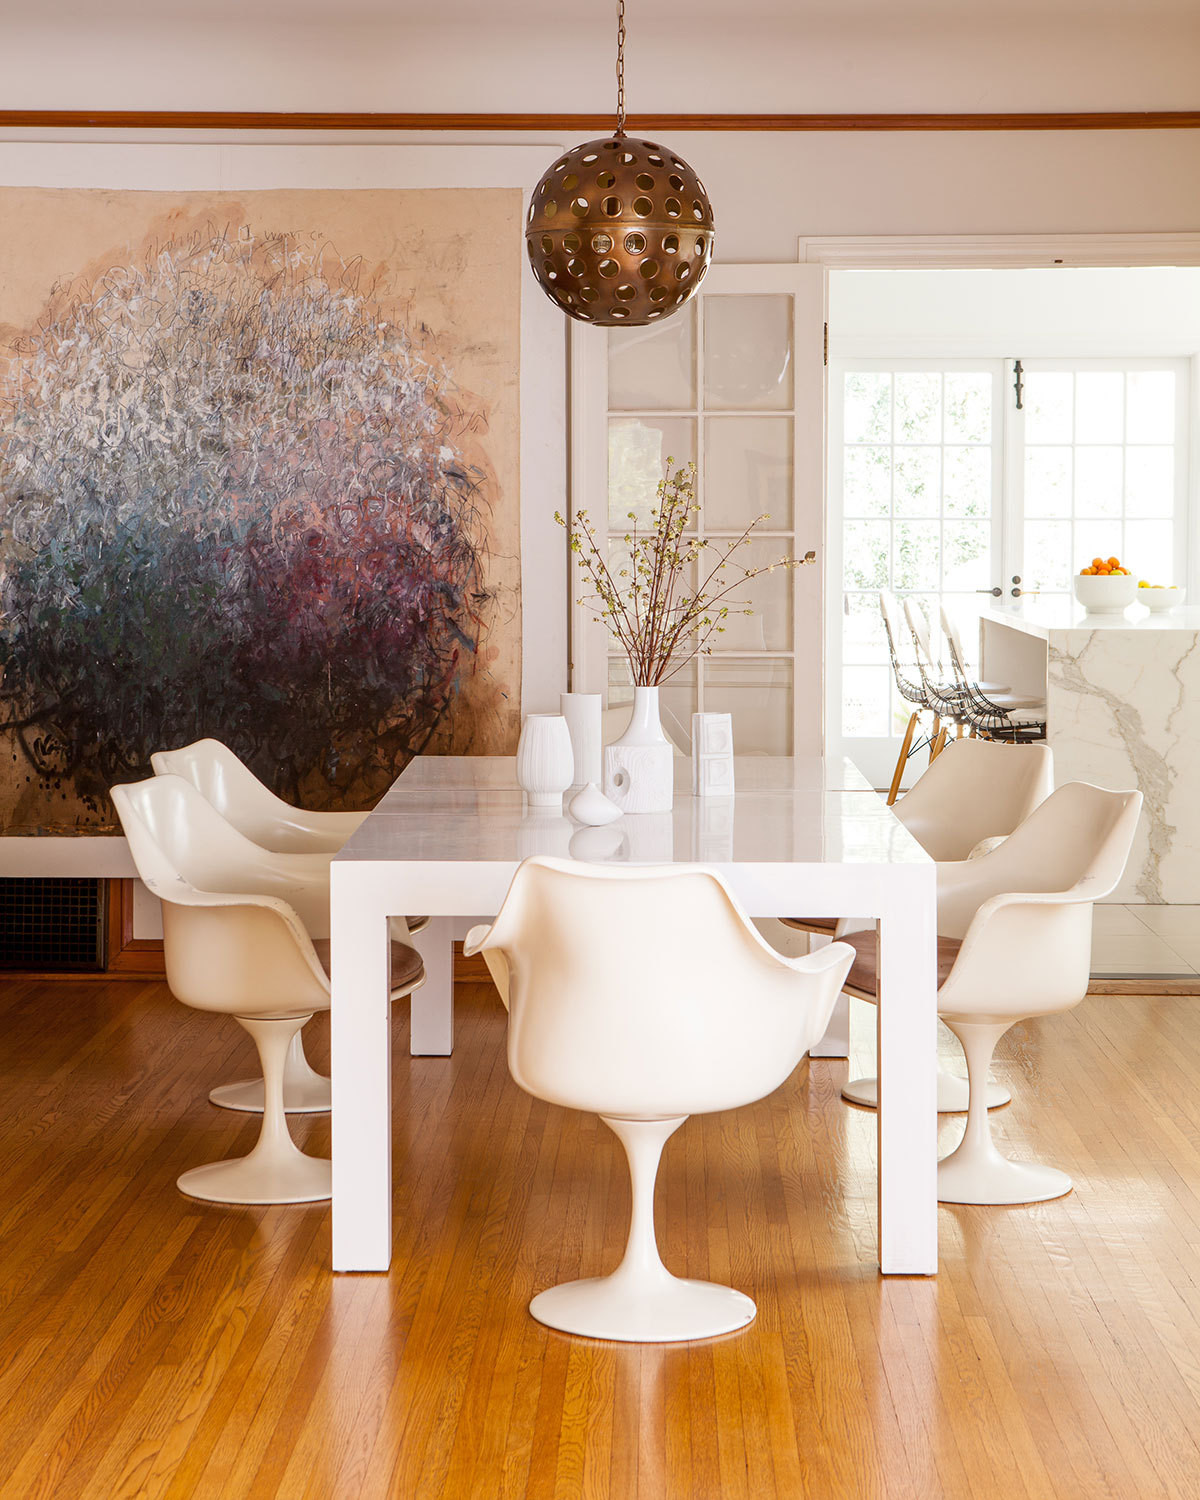 The White Dining Table Is A Midcentury Milo Baughman Purchased On Craigslist.  The Tulip Chairs